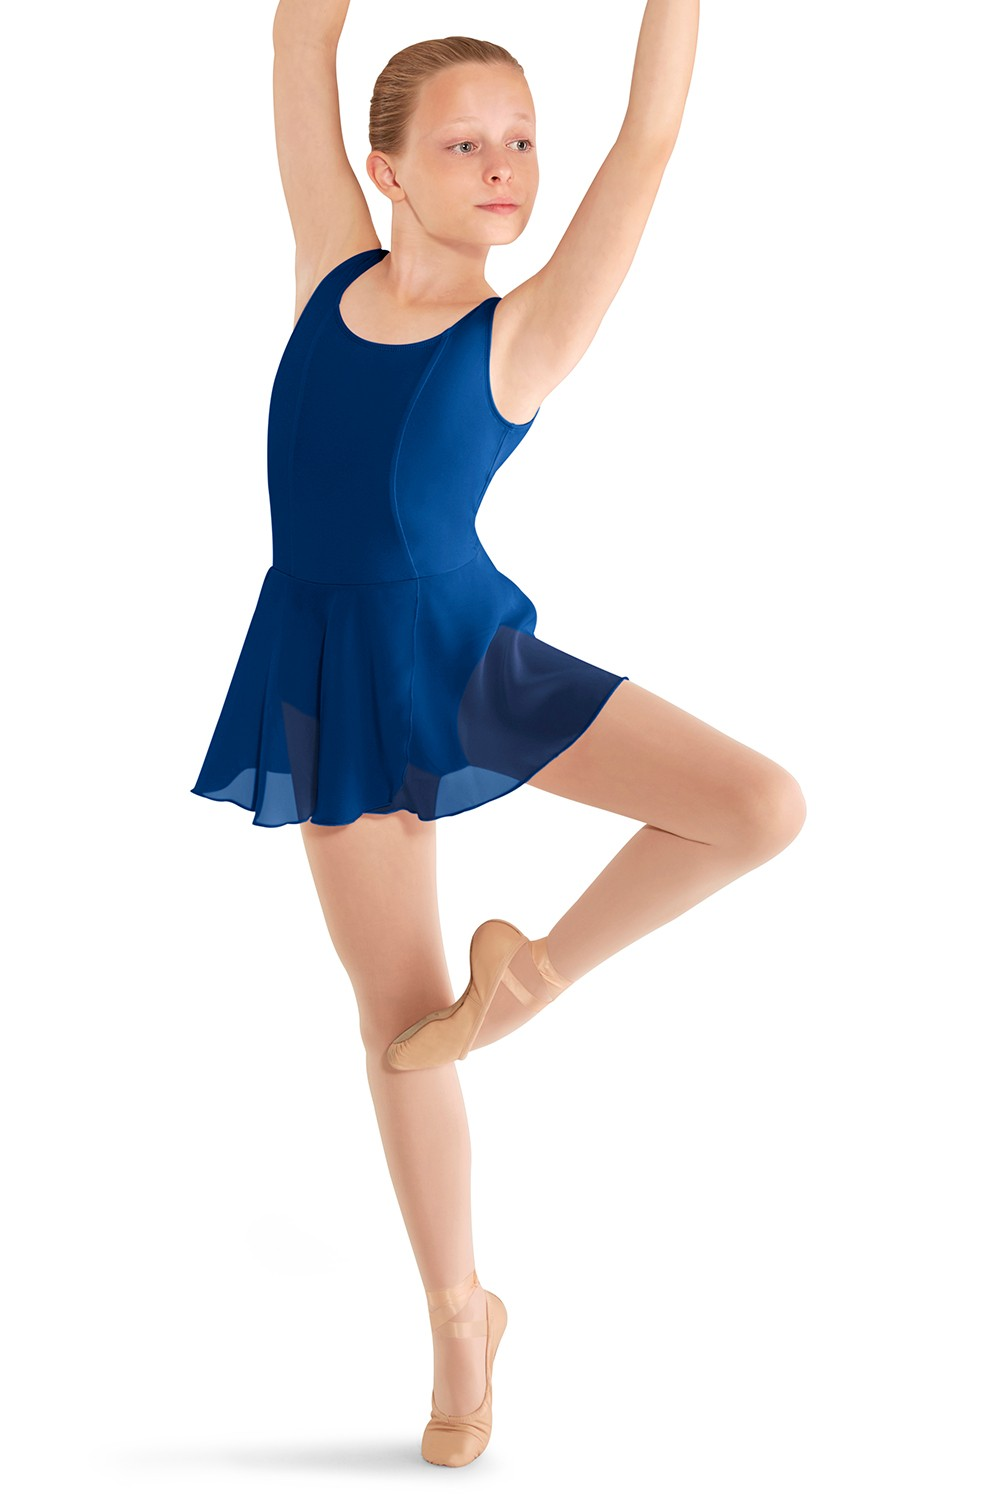 Wrap Skirted Tank Leotard Children's Dance Leotards